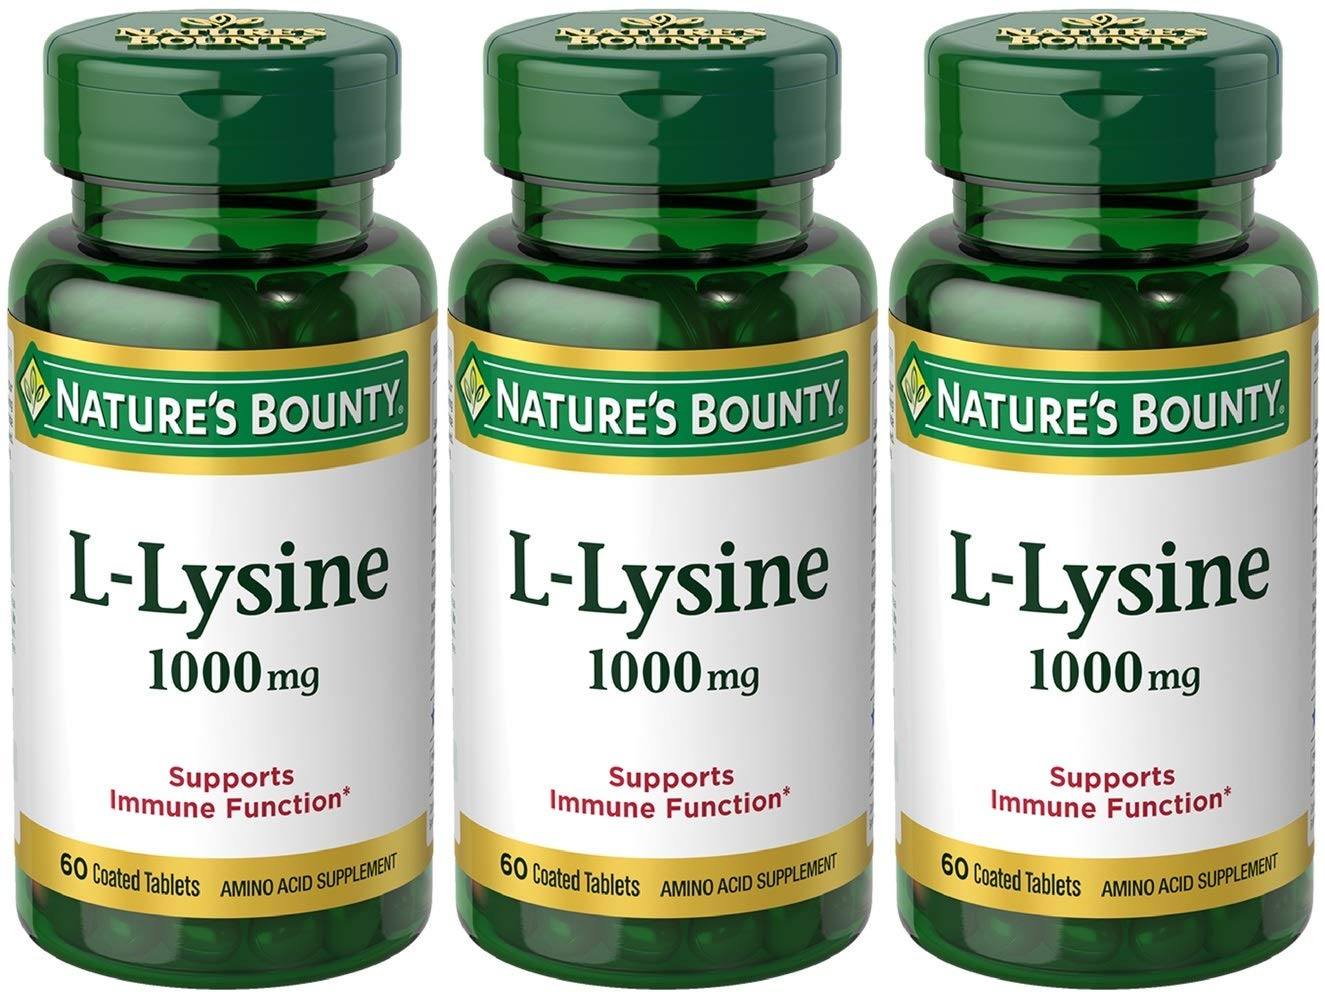 Nature's Bounty L-Lysine, 1000mg, 180 Tablets (3 x 60 Count Bottles) by Nature's Bounty